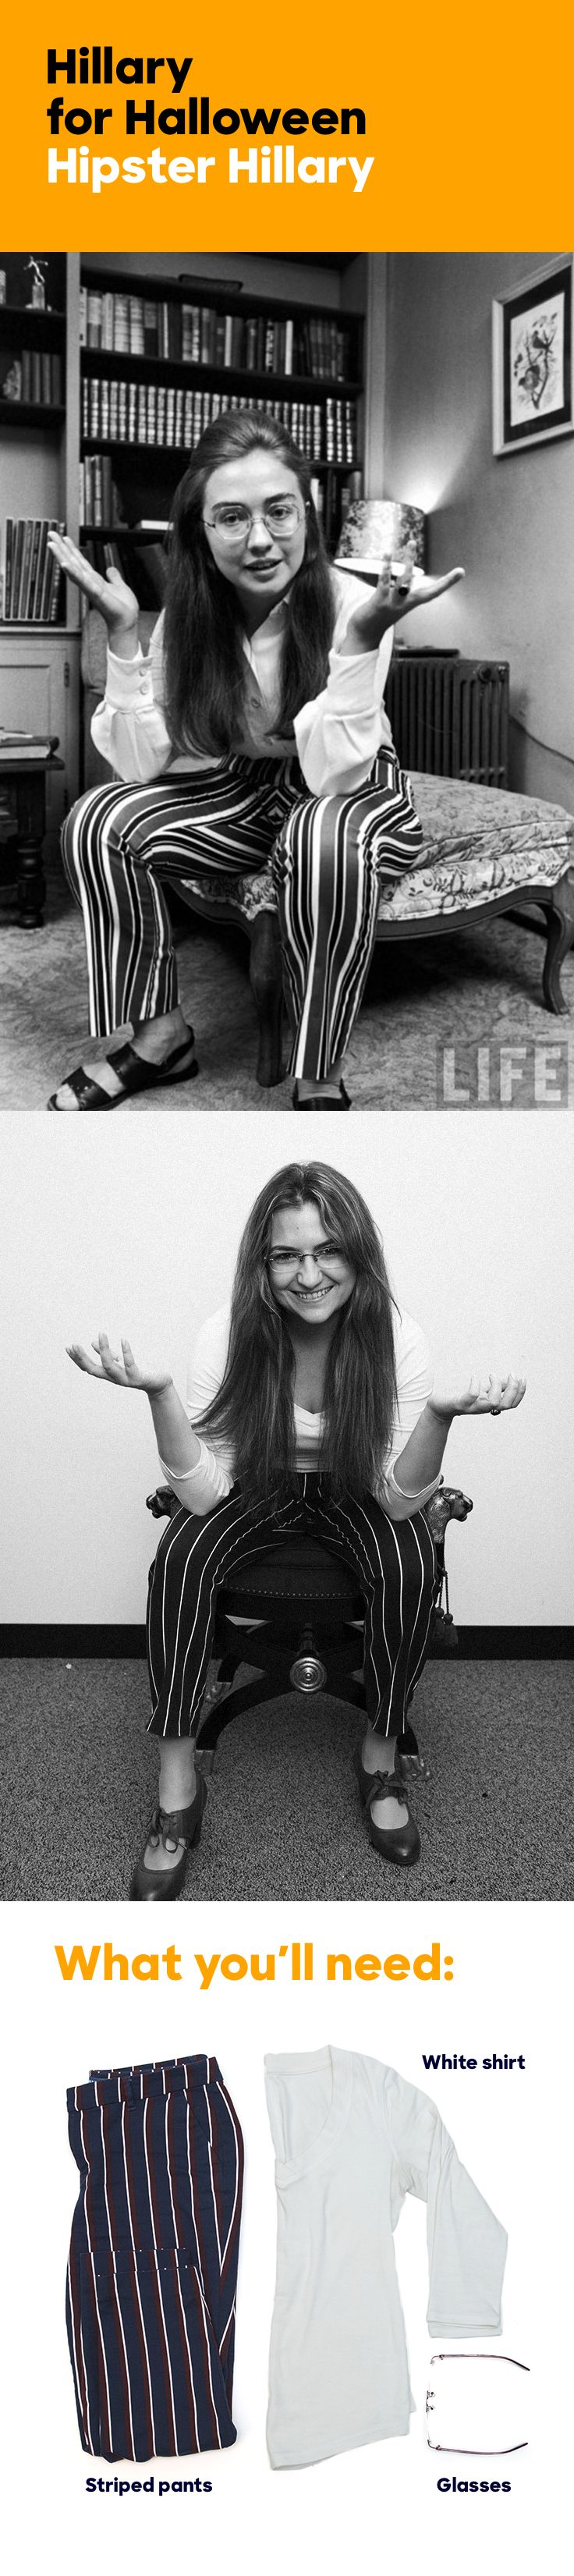 "LIFE magazine featured Wellesley College's first-ever student commencement speaker—Hillary Rodham—in its graduation round-up, ""The Class of '69."" On the cusp of the '70s, Hillary donned oversize wire-frame glasses, strappy leather sandals, and psychedelic striped pants for the LIFE photoshoot. Channel her hipster style for Halloween! For more Hillary Clinton-inspired costumes, click this pin."